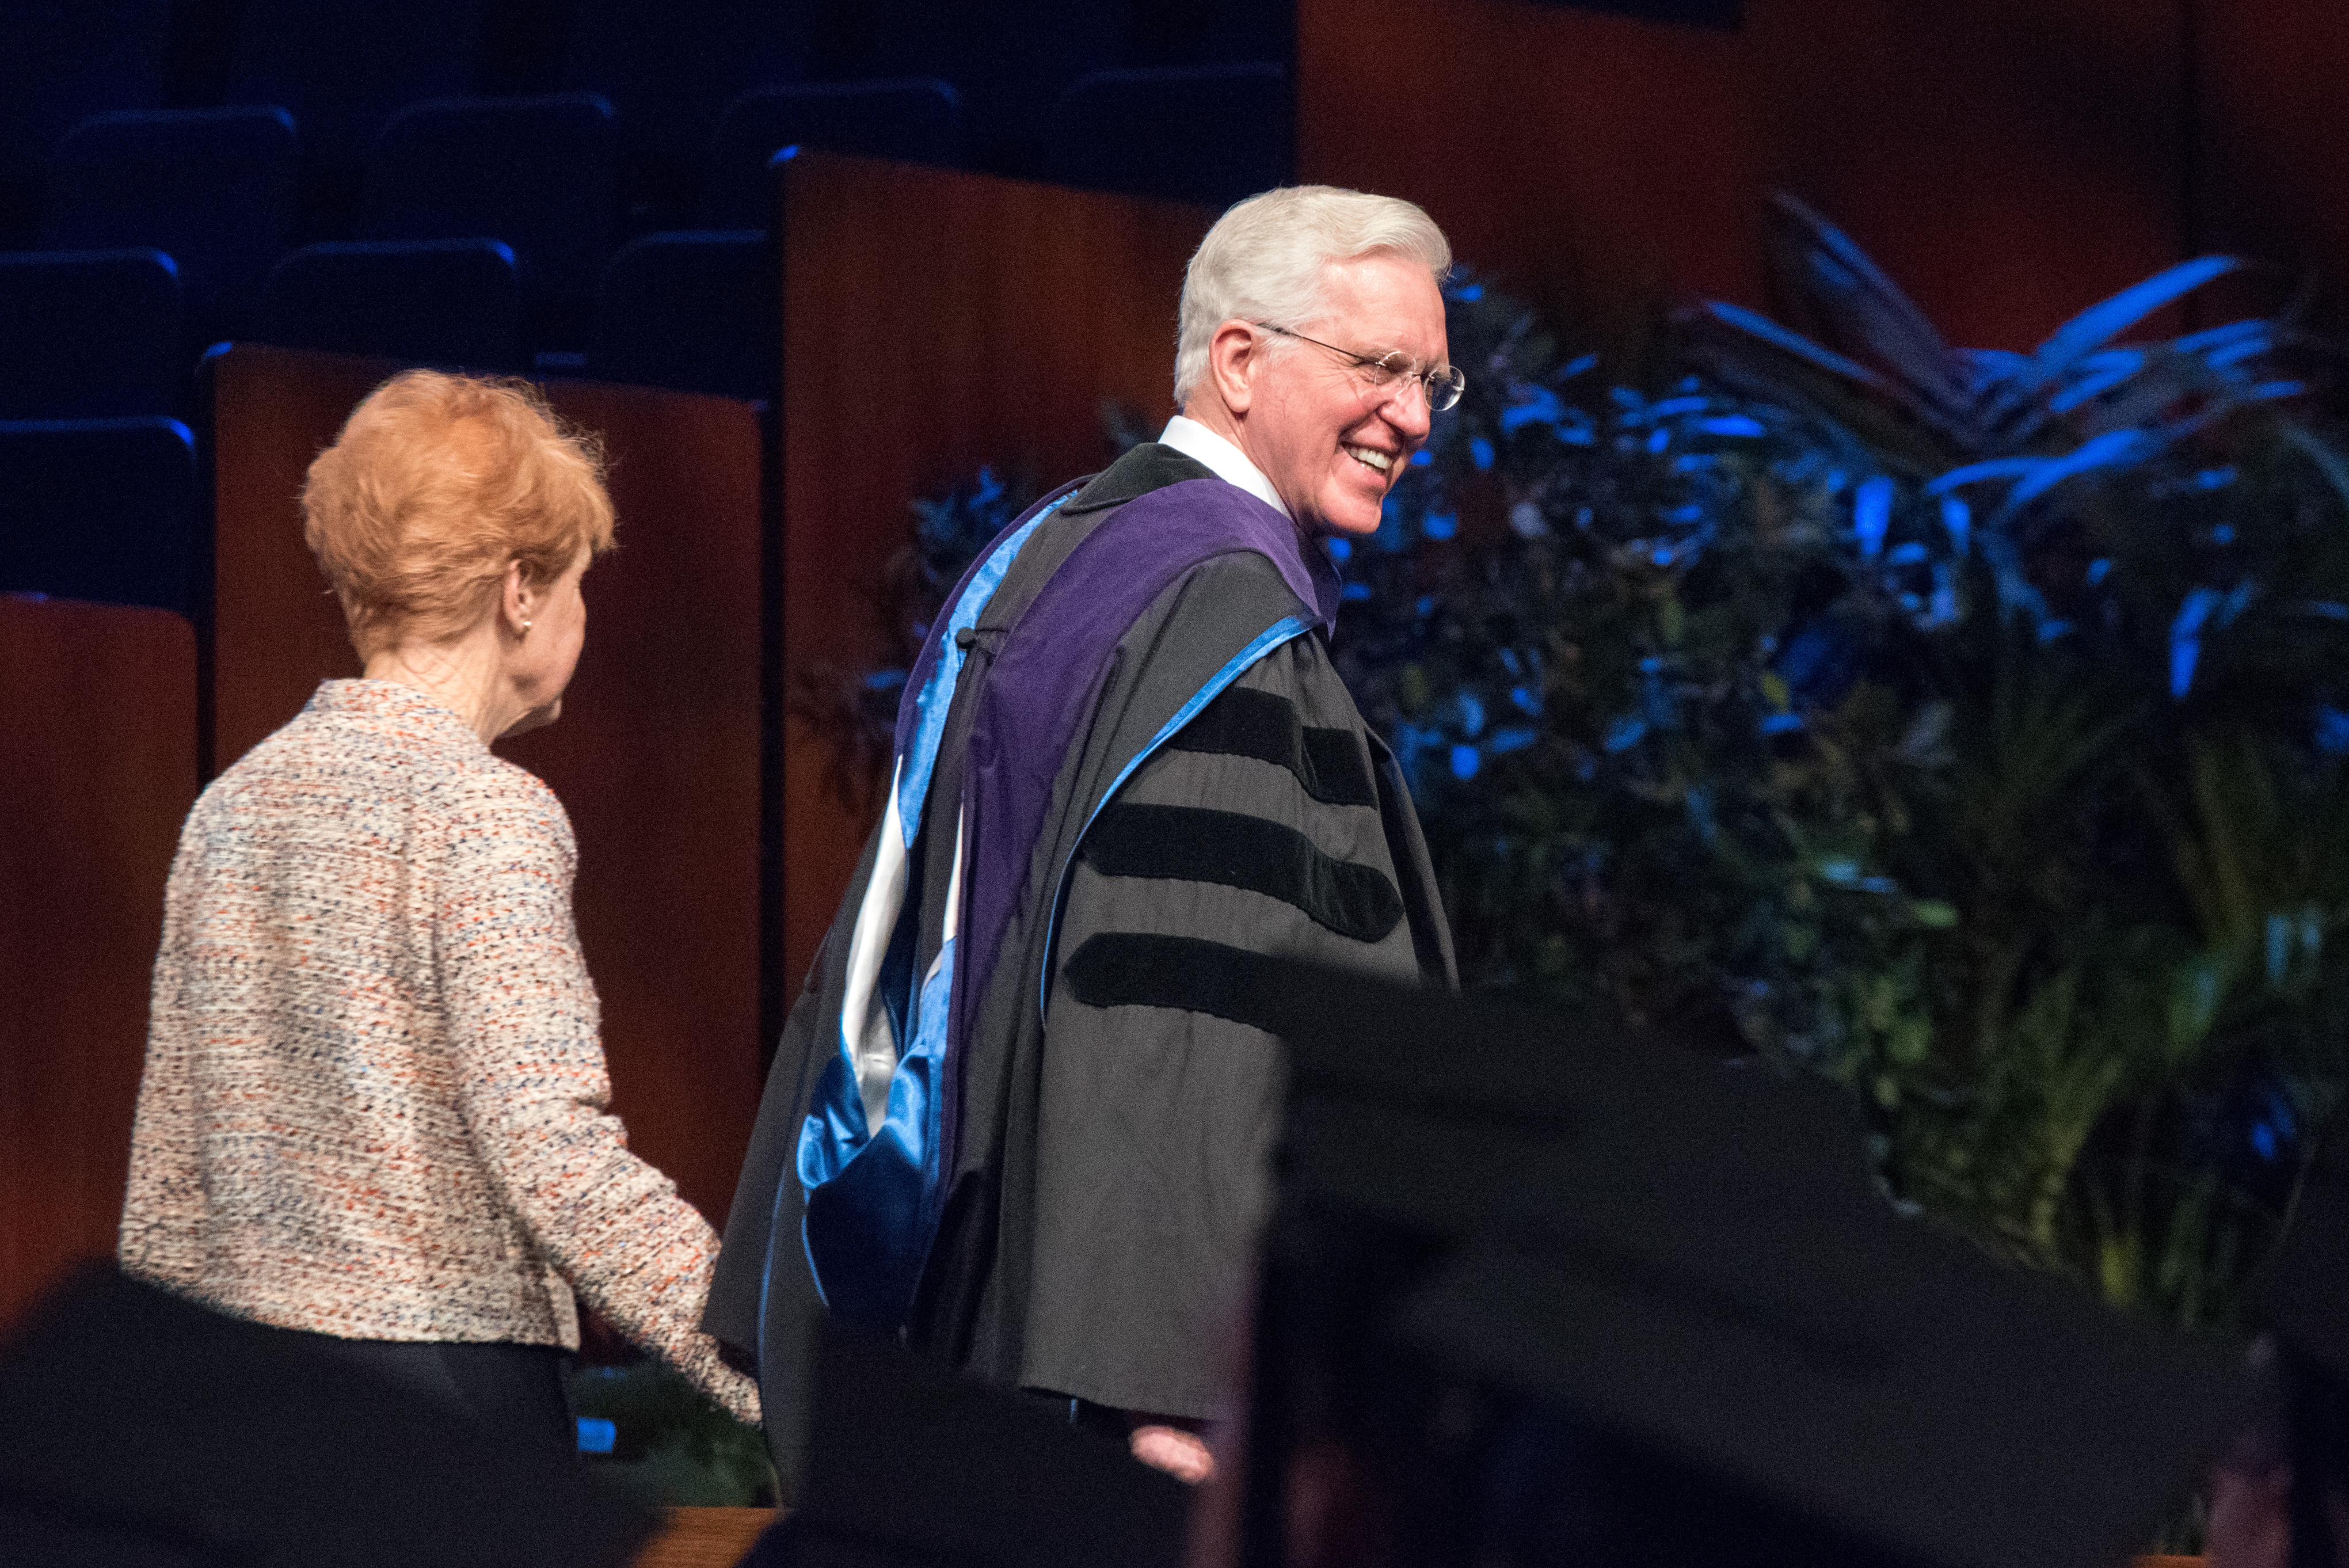 Elder D. Todd Christofferson of the Quorum of the Twelve Apostles and his wife, Sister Kathy Christofferson, are seen during the BYU-Idaho 2018 Fall semester commencement on Dec. 19, 2018.